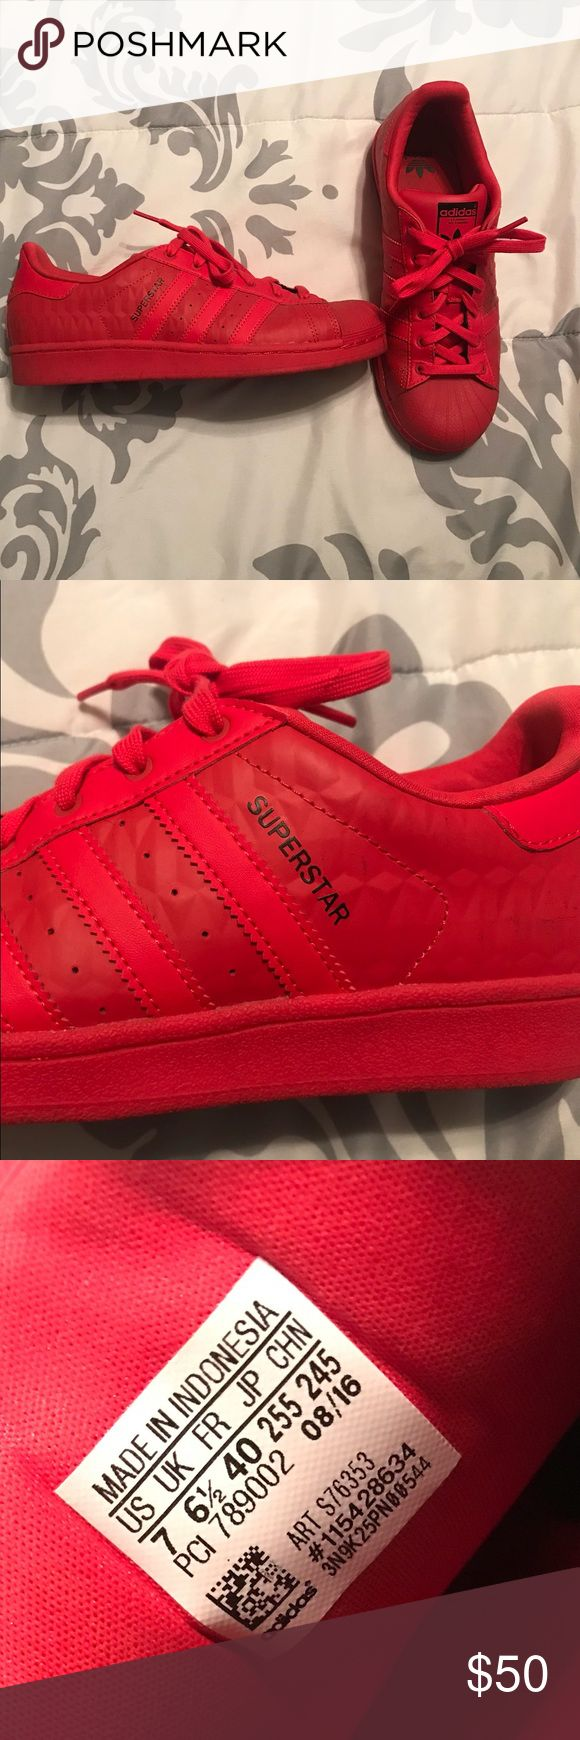 Red Adidas shoes Bright red Adidas shoes, never been worn adidas Shoes Athletic Shoes